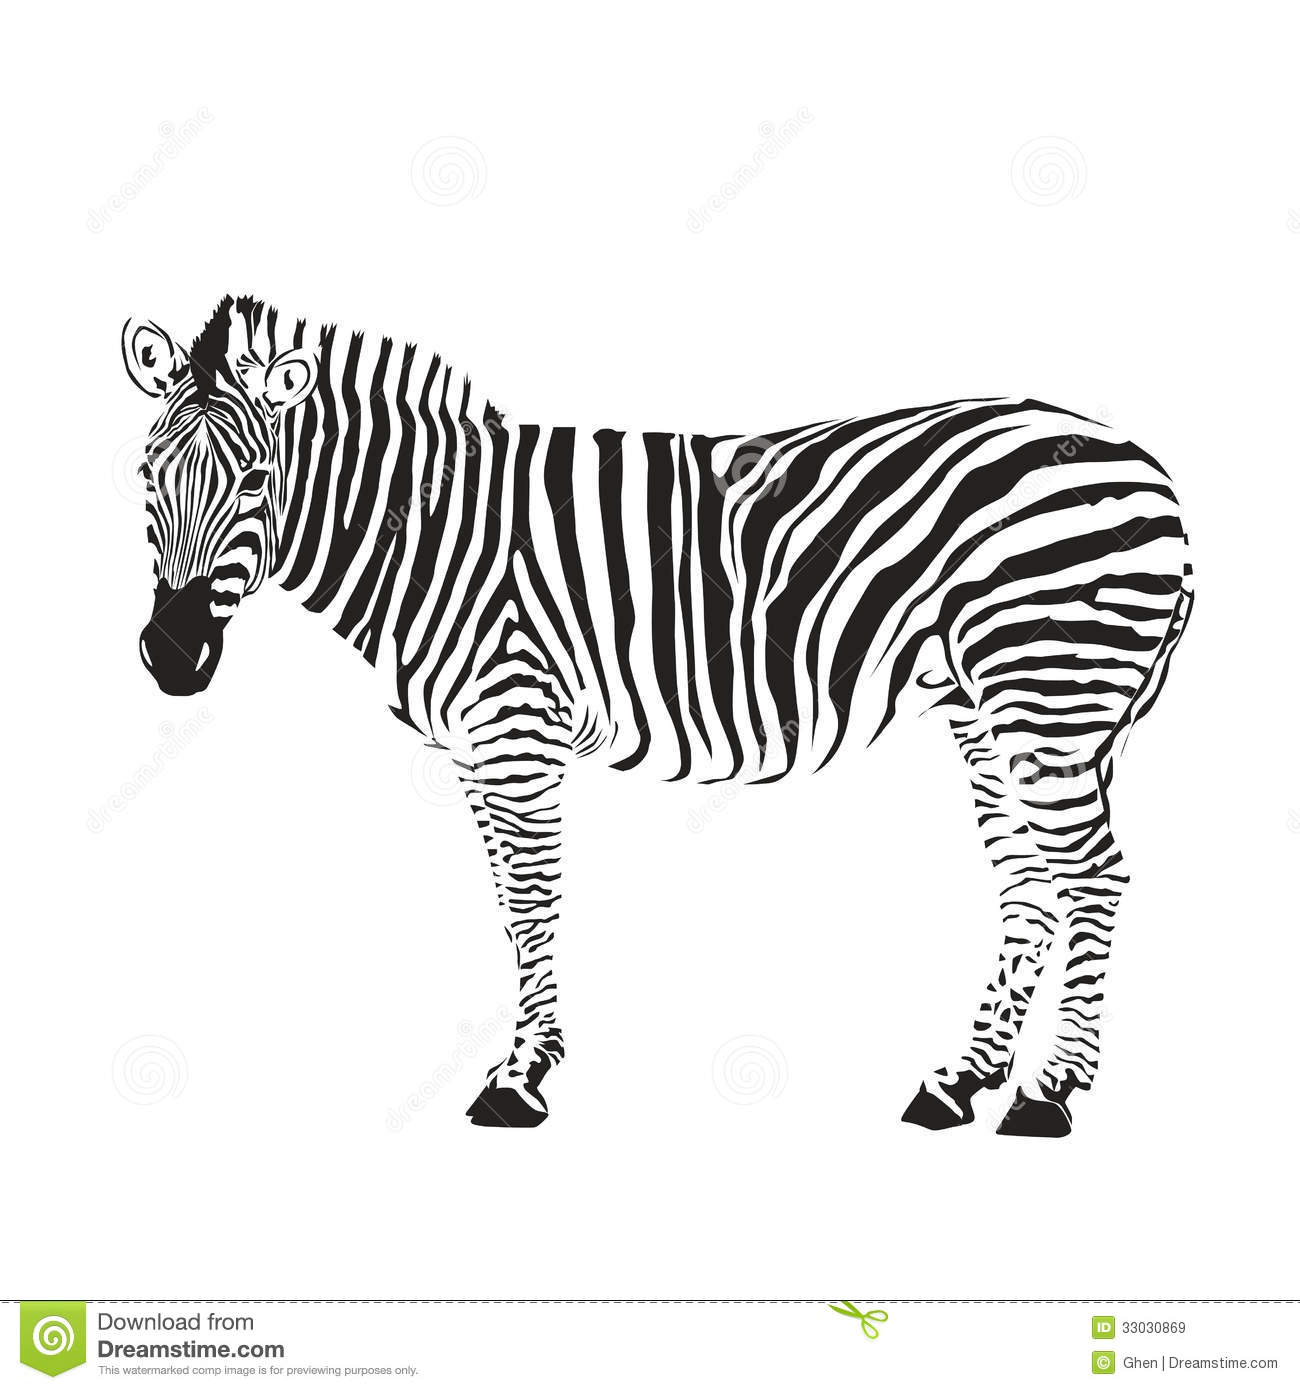 Zebra Silhouette Stock Vector Illustration Of African